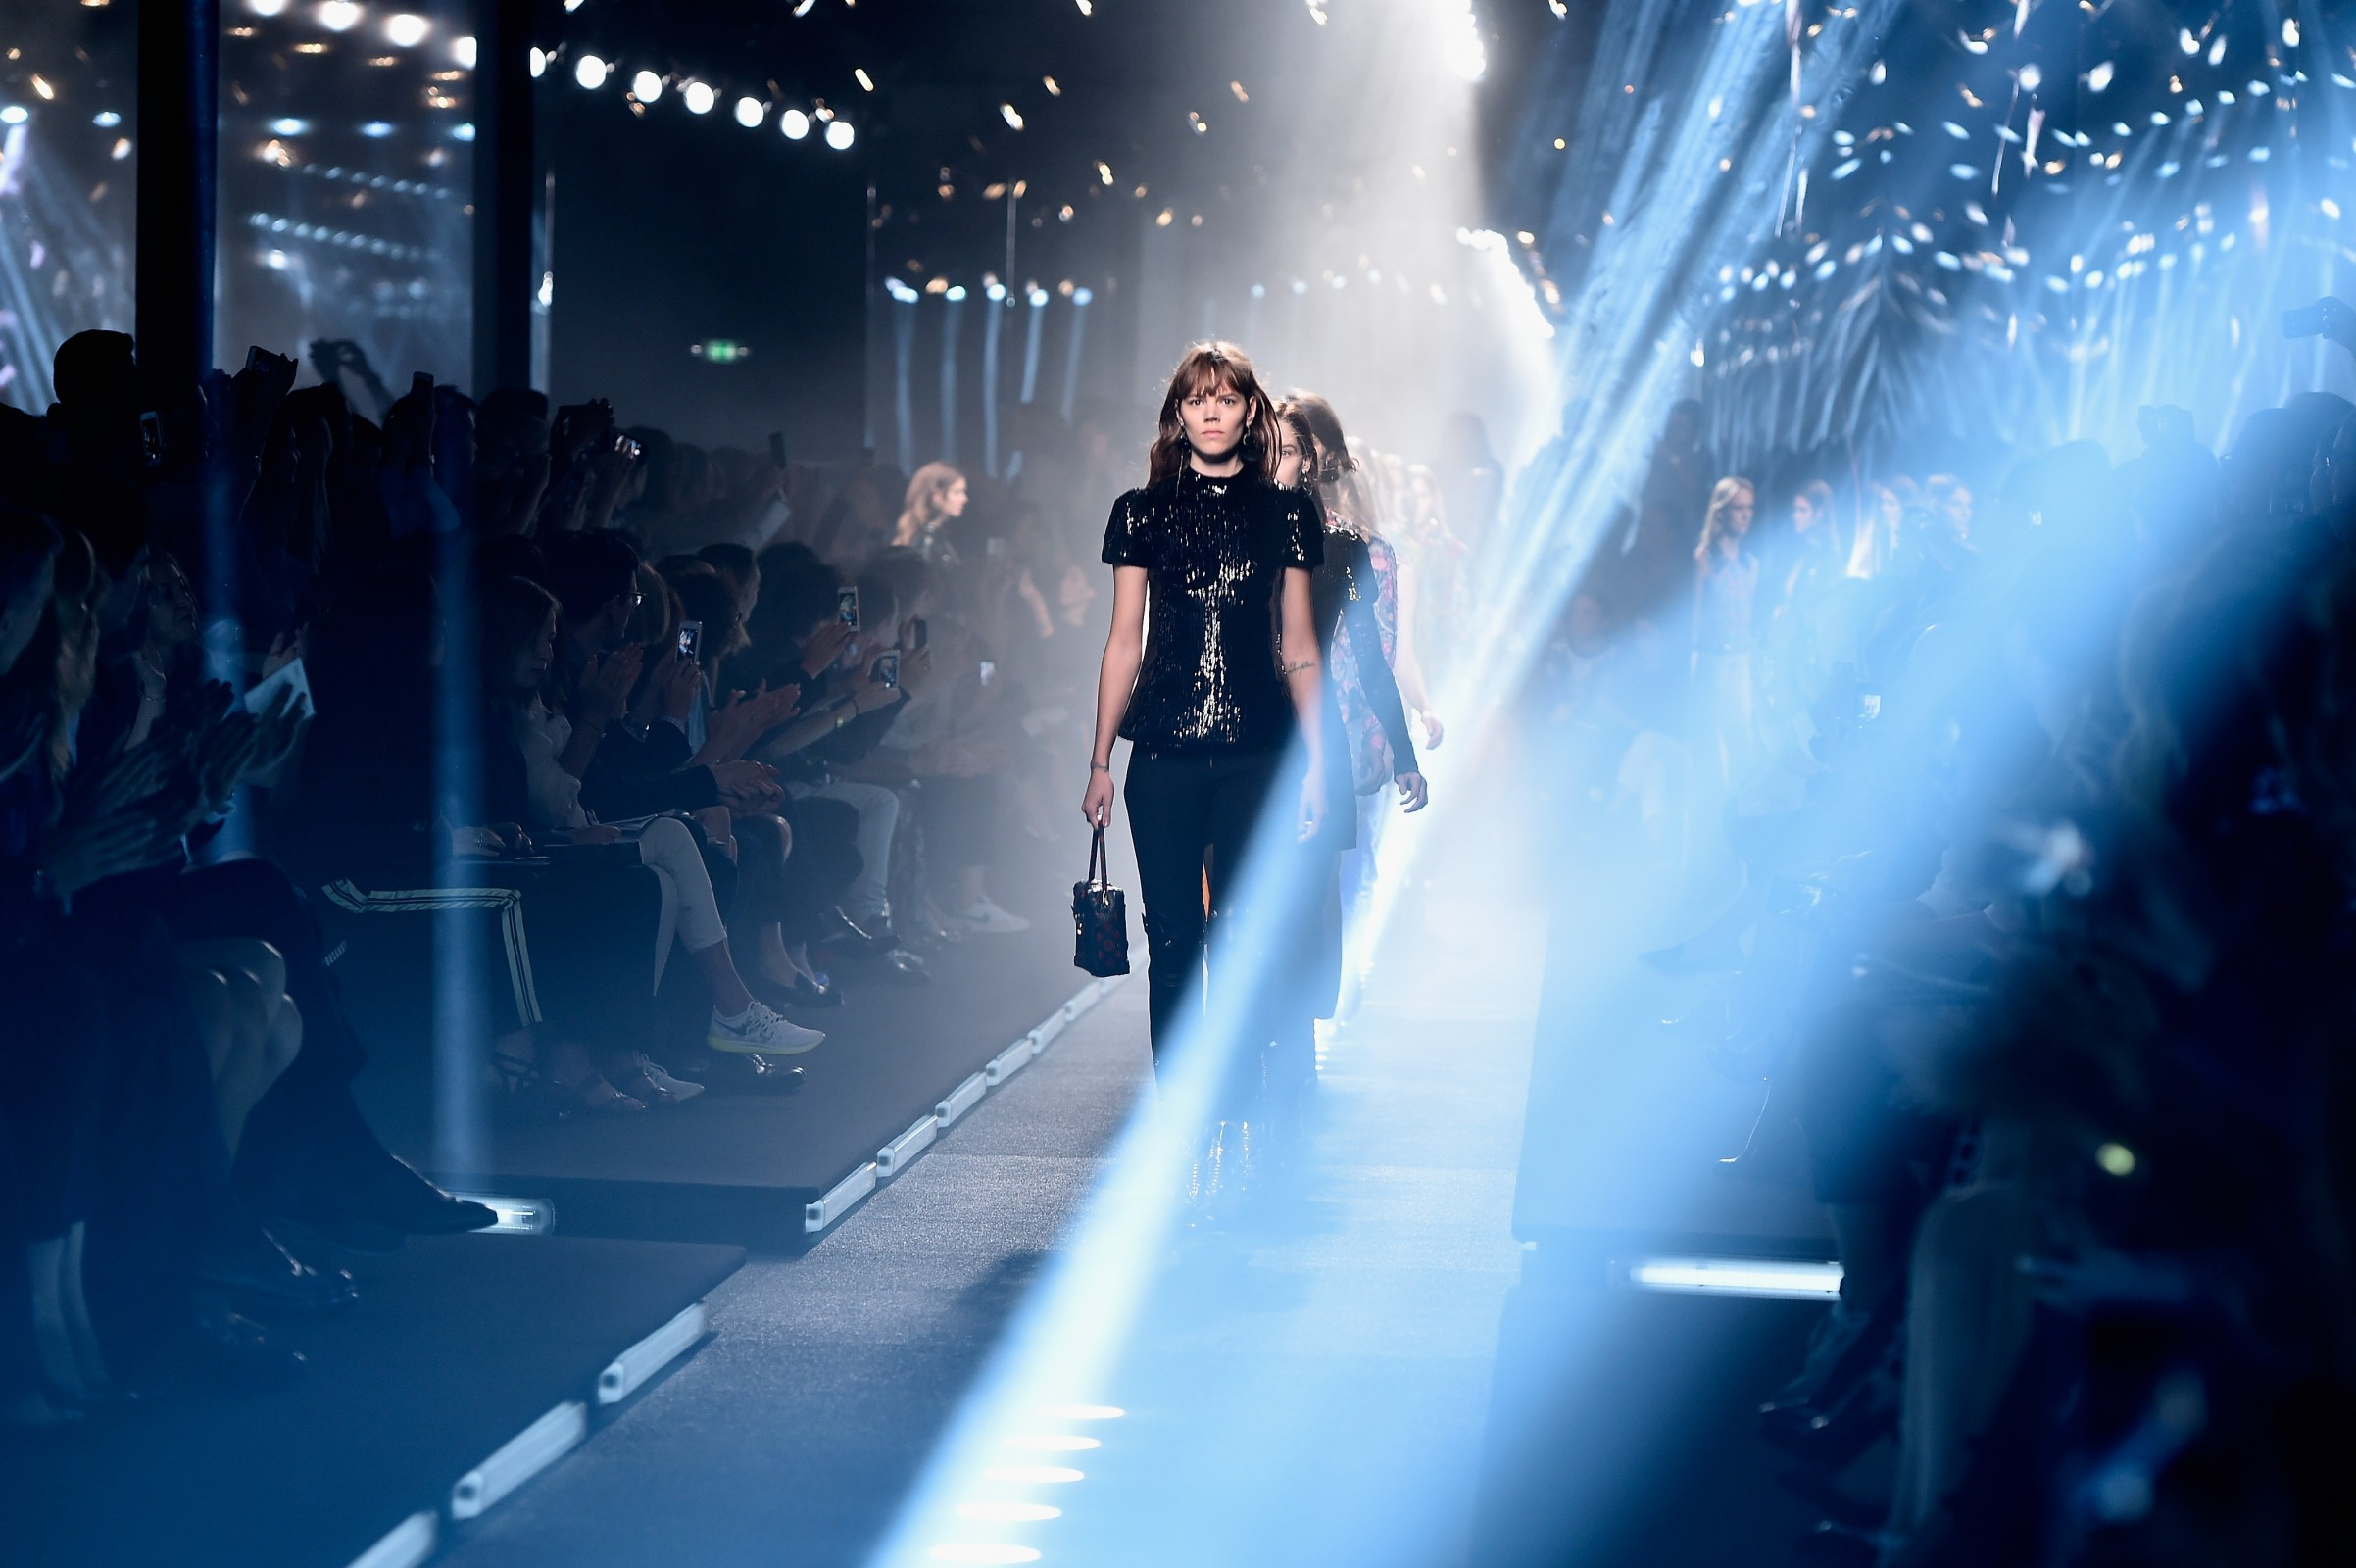 SS15: A Memory In Fashion